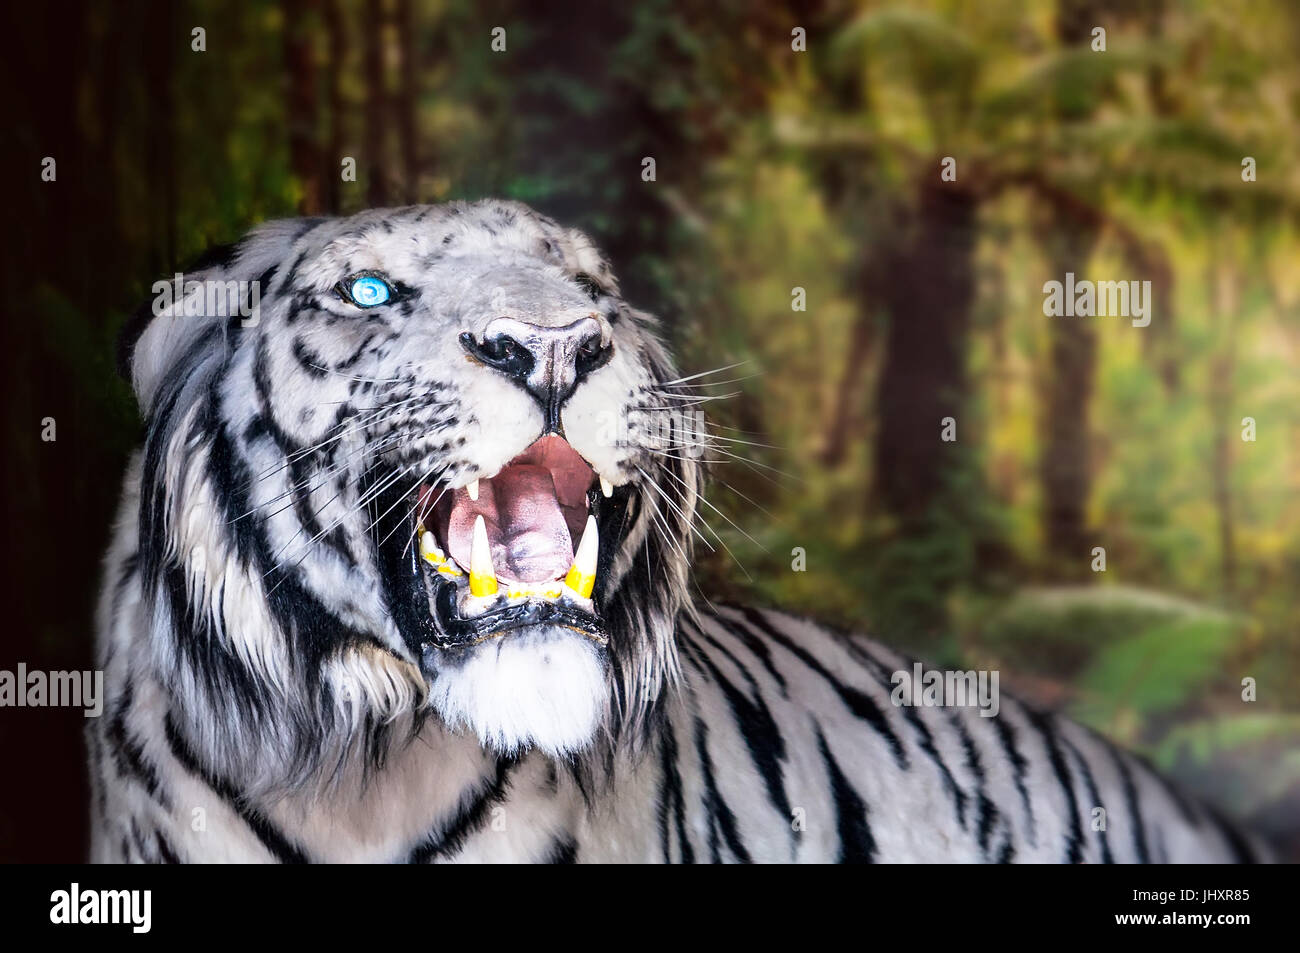 the white tiger growls. big canines. doff - Stock Image